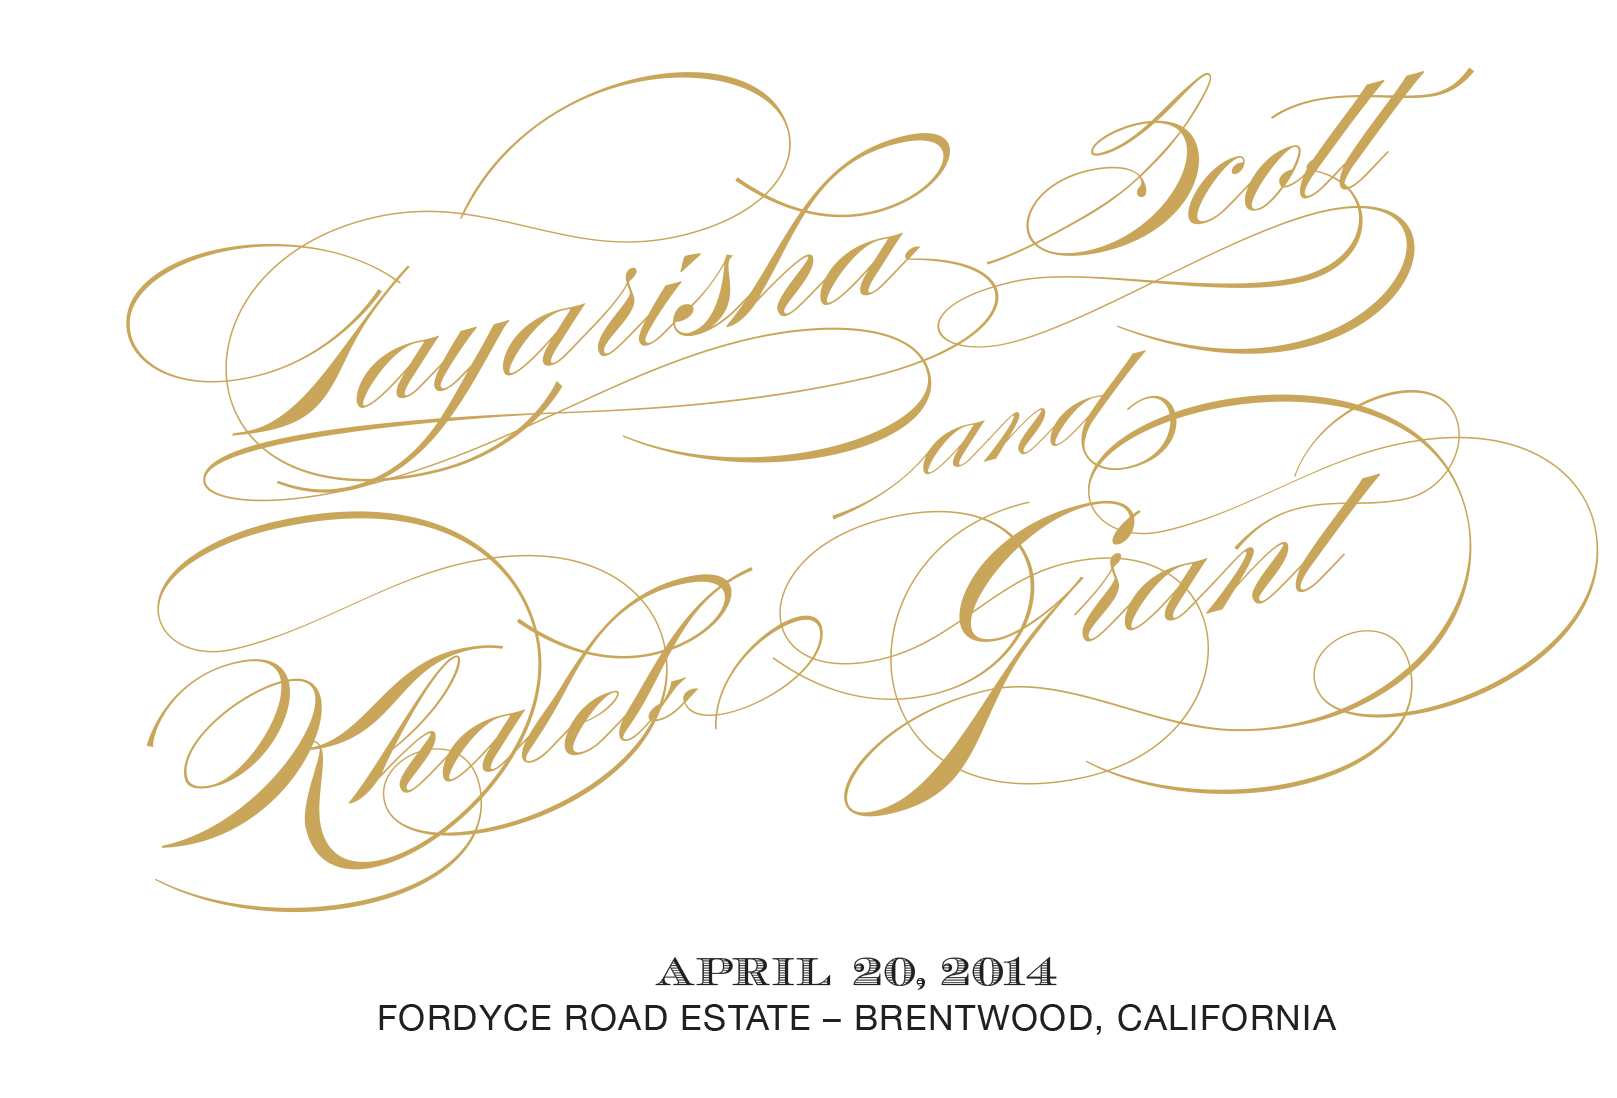 Personal Notes Add to the Gold Embellishments on the Program